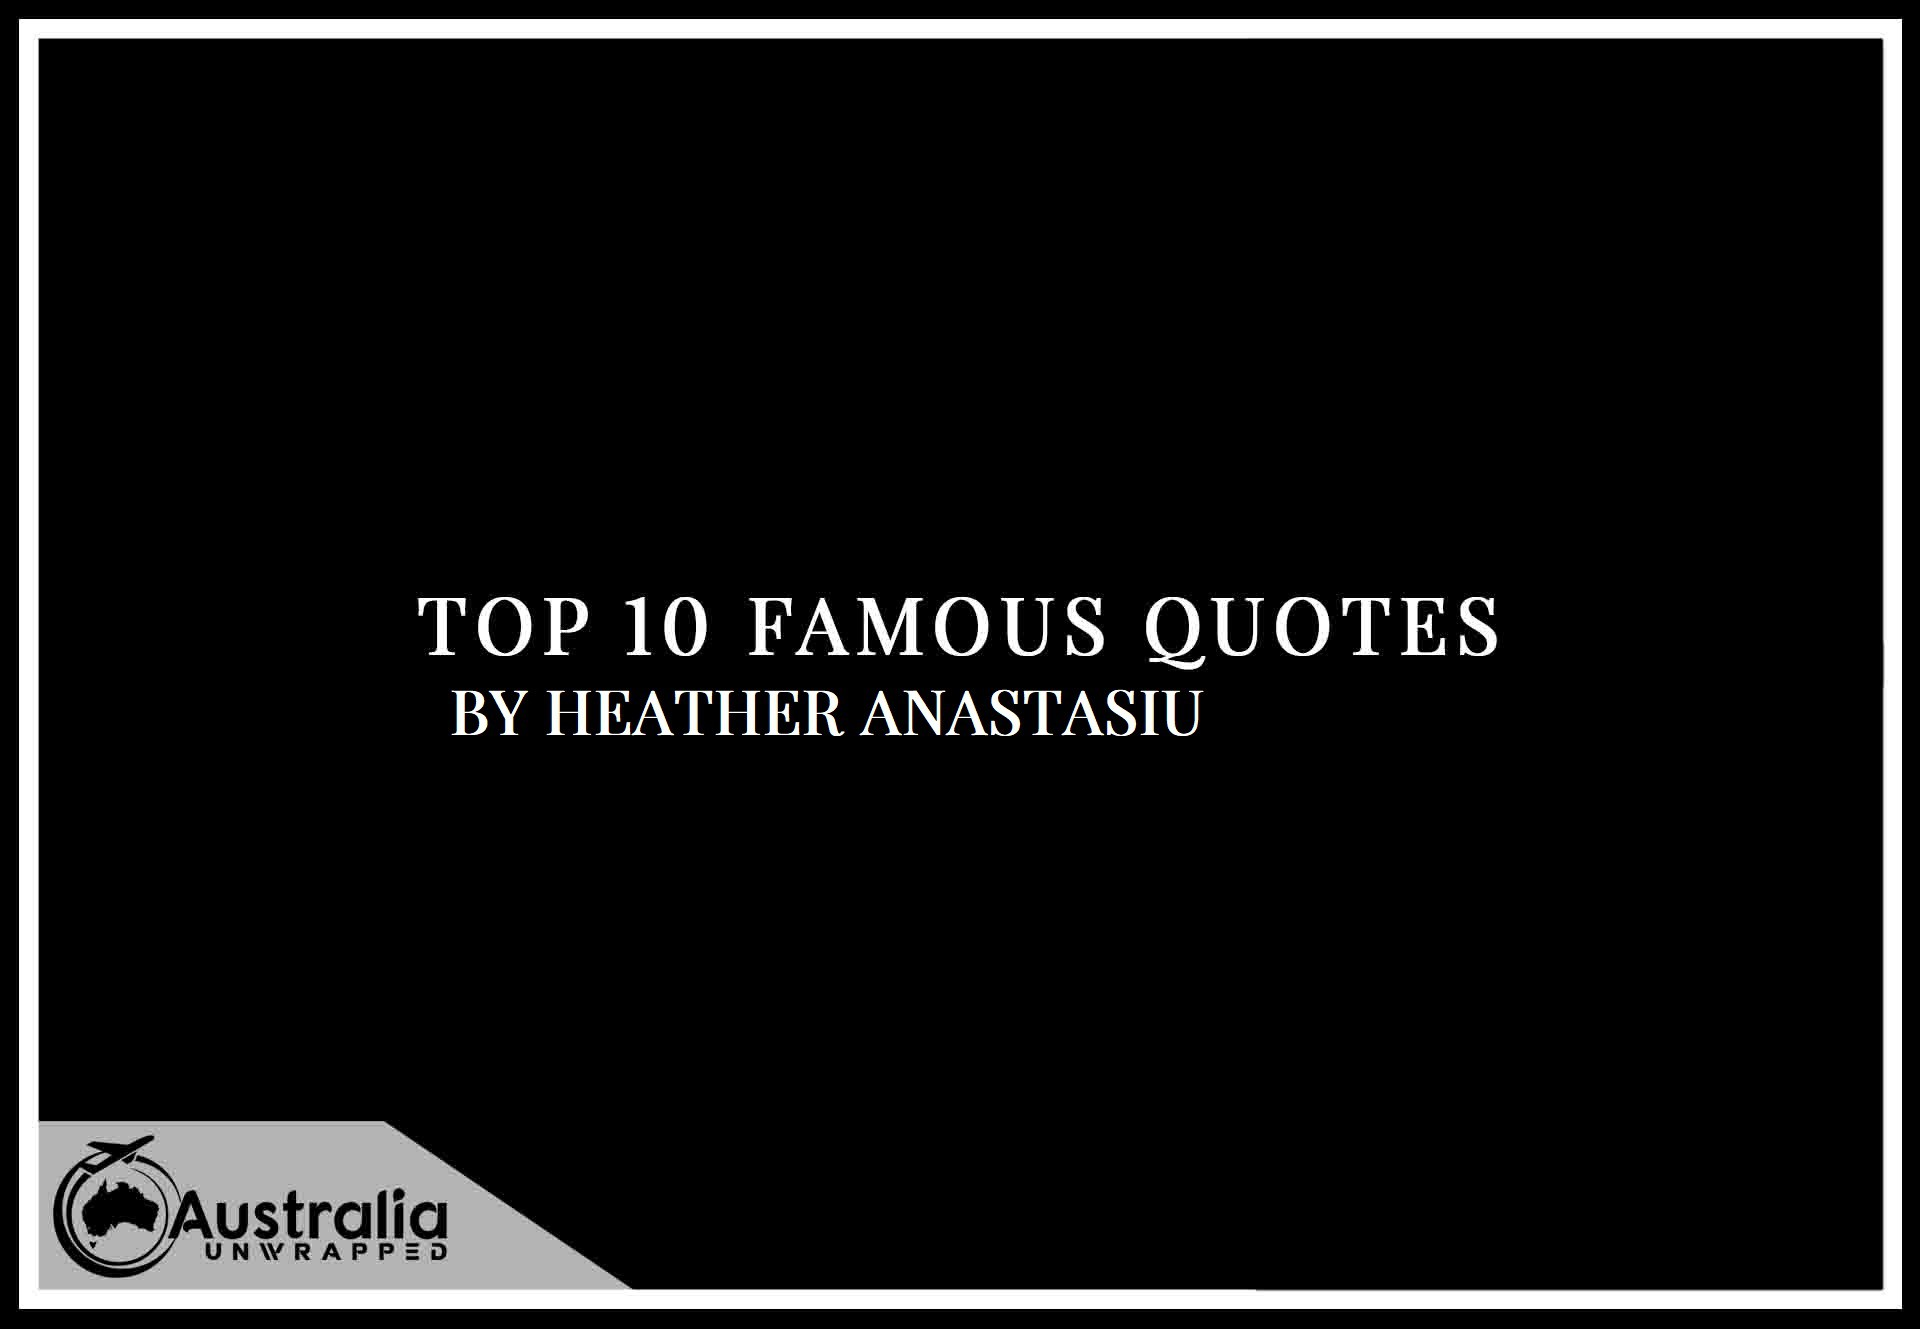 Top 10 Famous Quotes by Author Heather Anastasiu